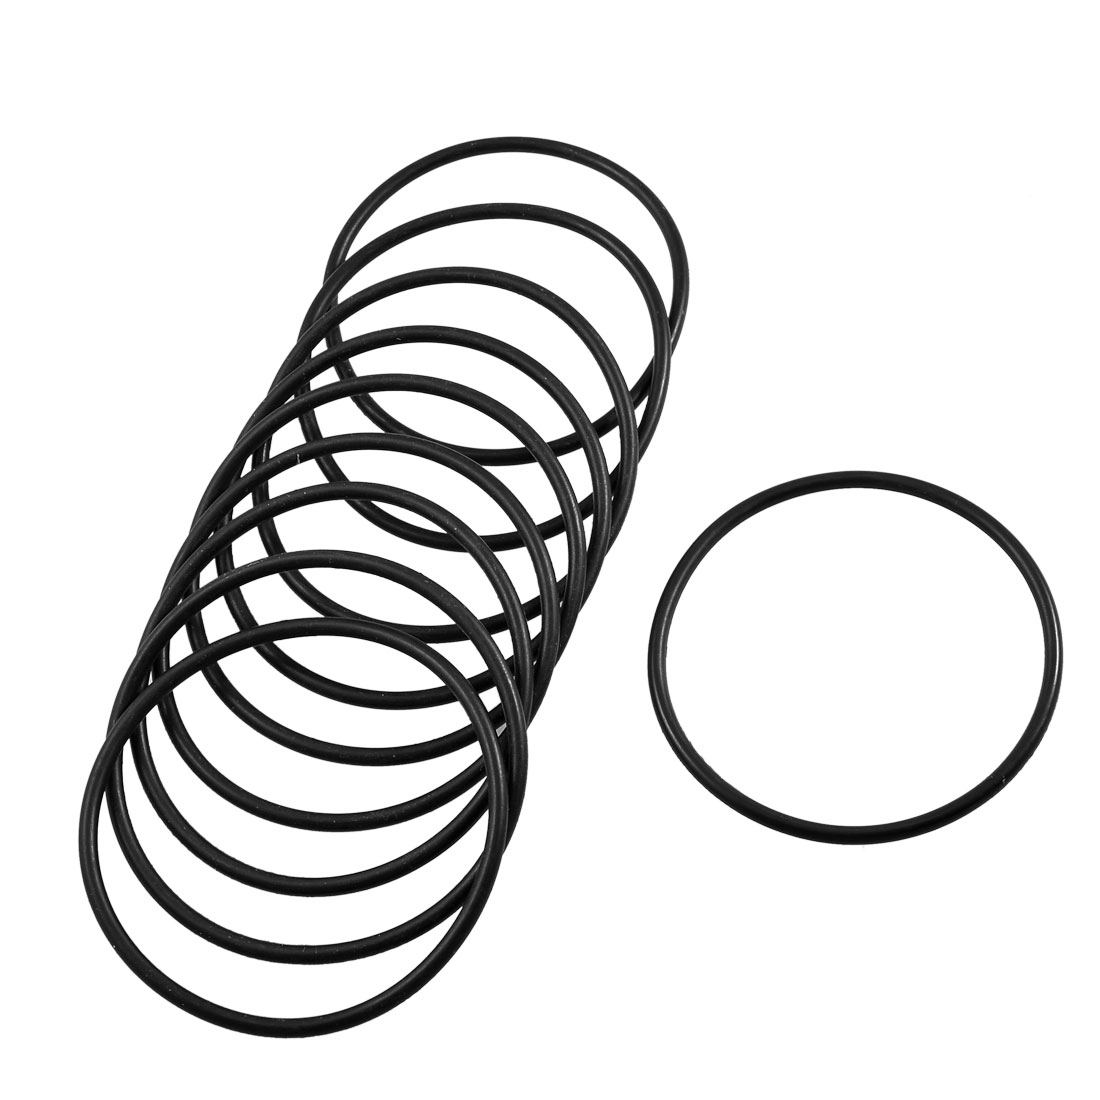 Unique Bargains 10 x 68mm External Dia Mechanical Black Rubber Oil Seal O Ring Gaskets - image 1 of 1